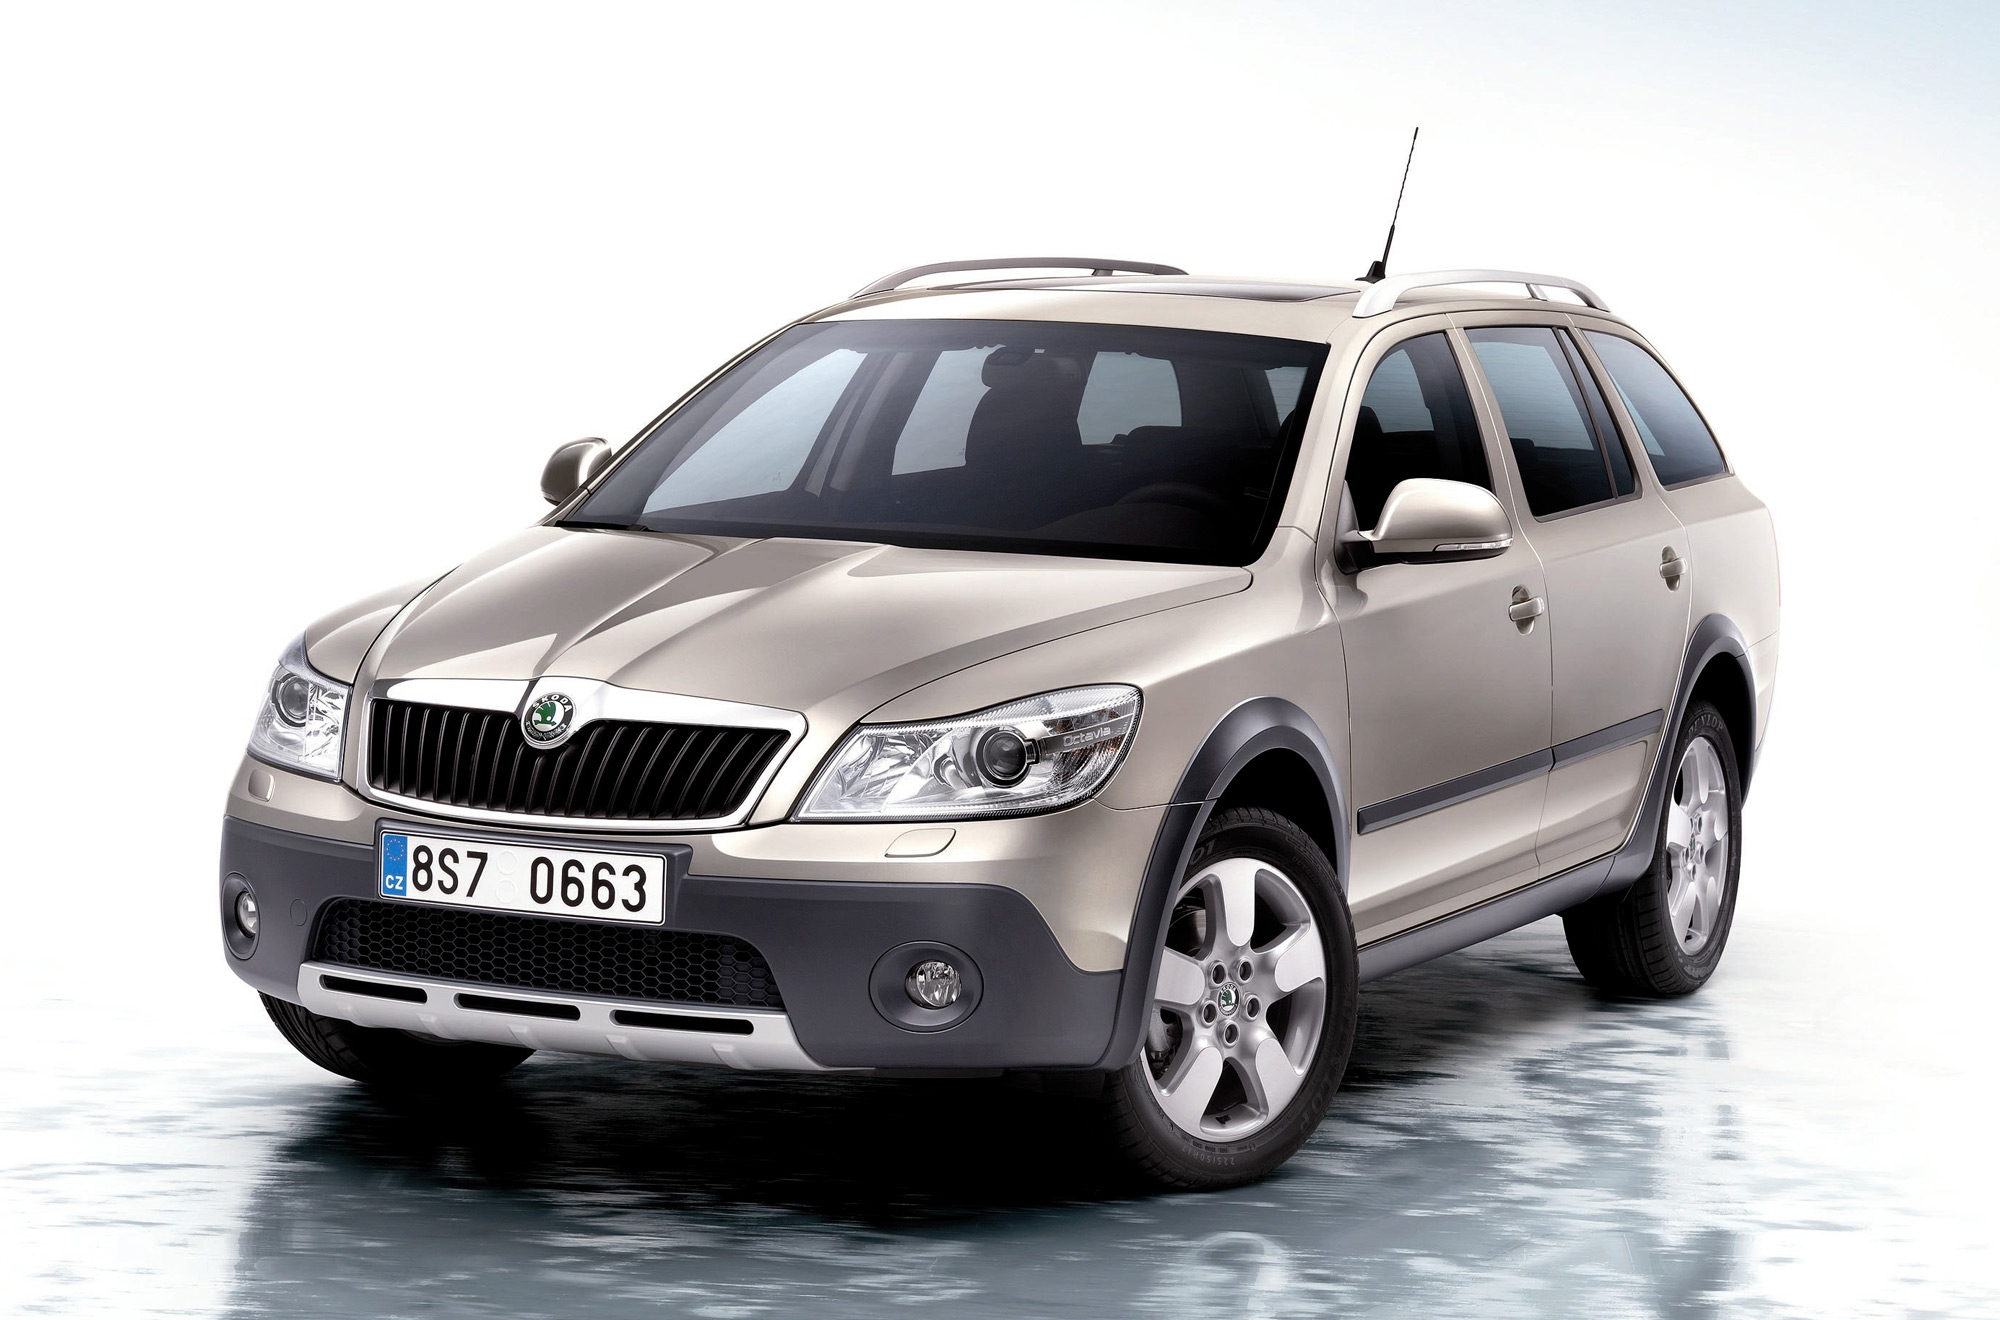 2009 skoda octavia scout. Black Bedroom Furniture Sets. Home Design Ideas